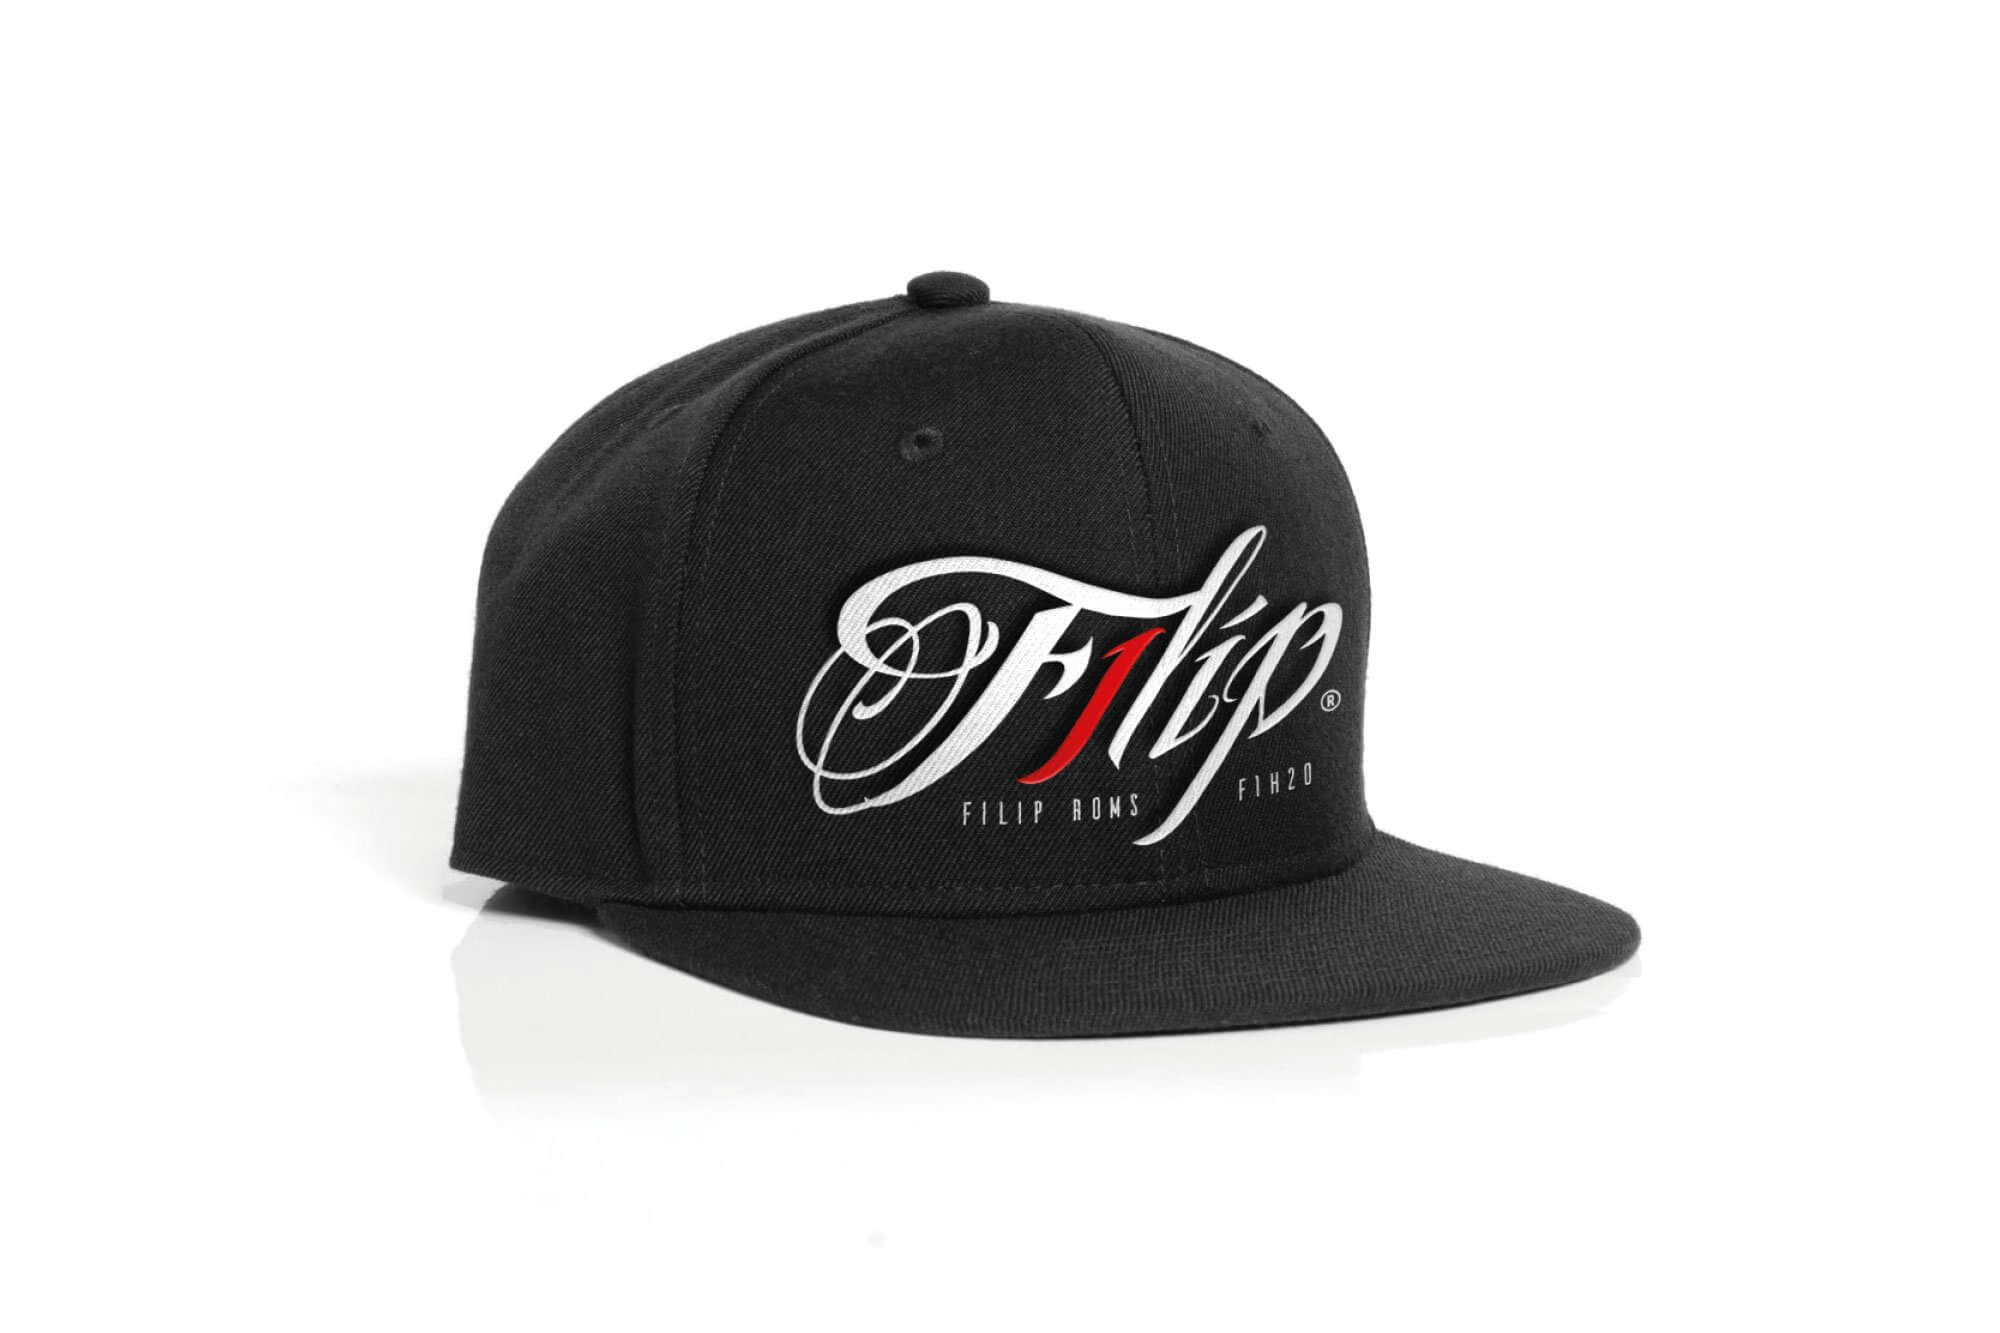 Filip F1H2O Accessories